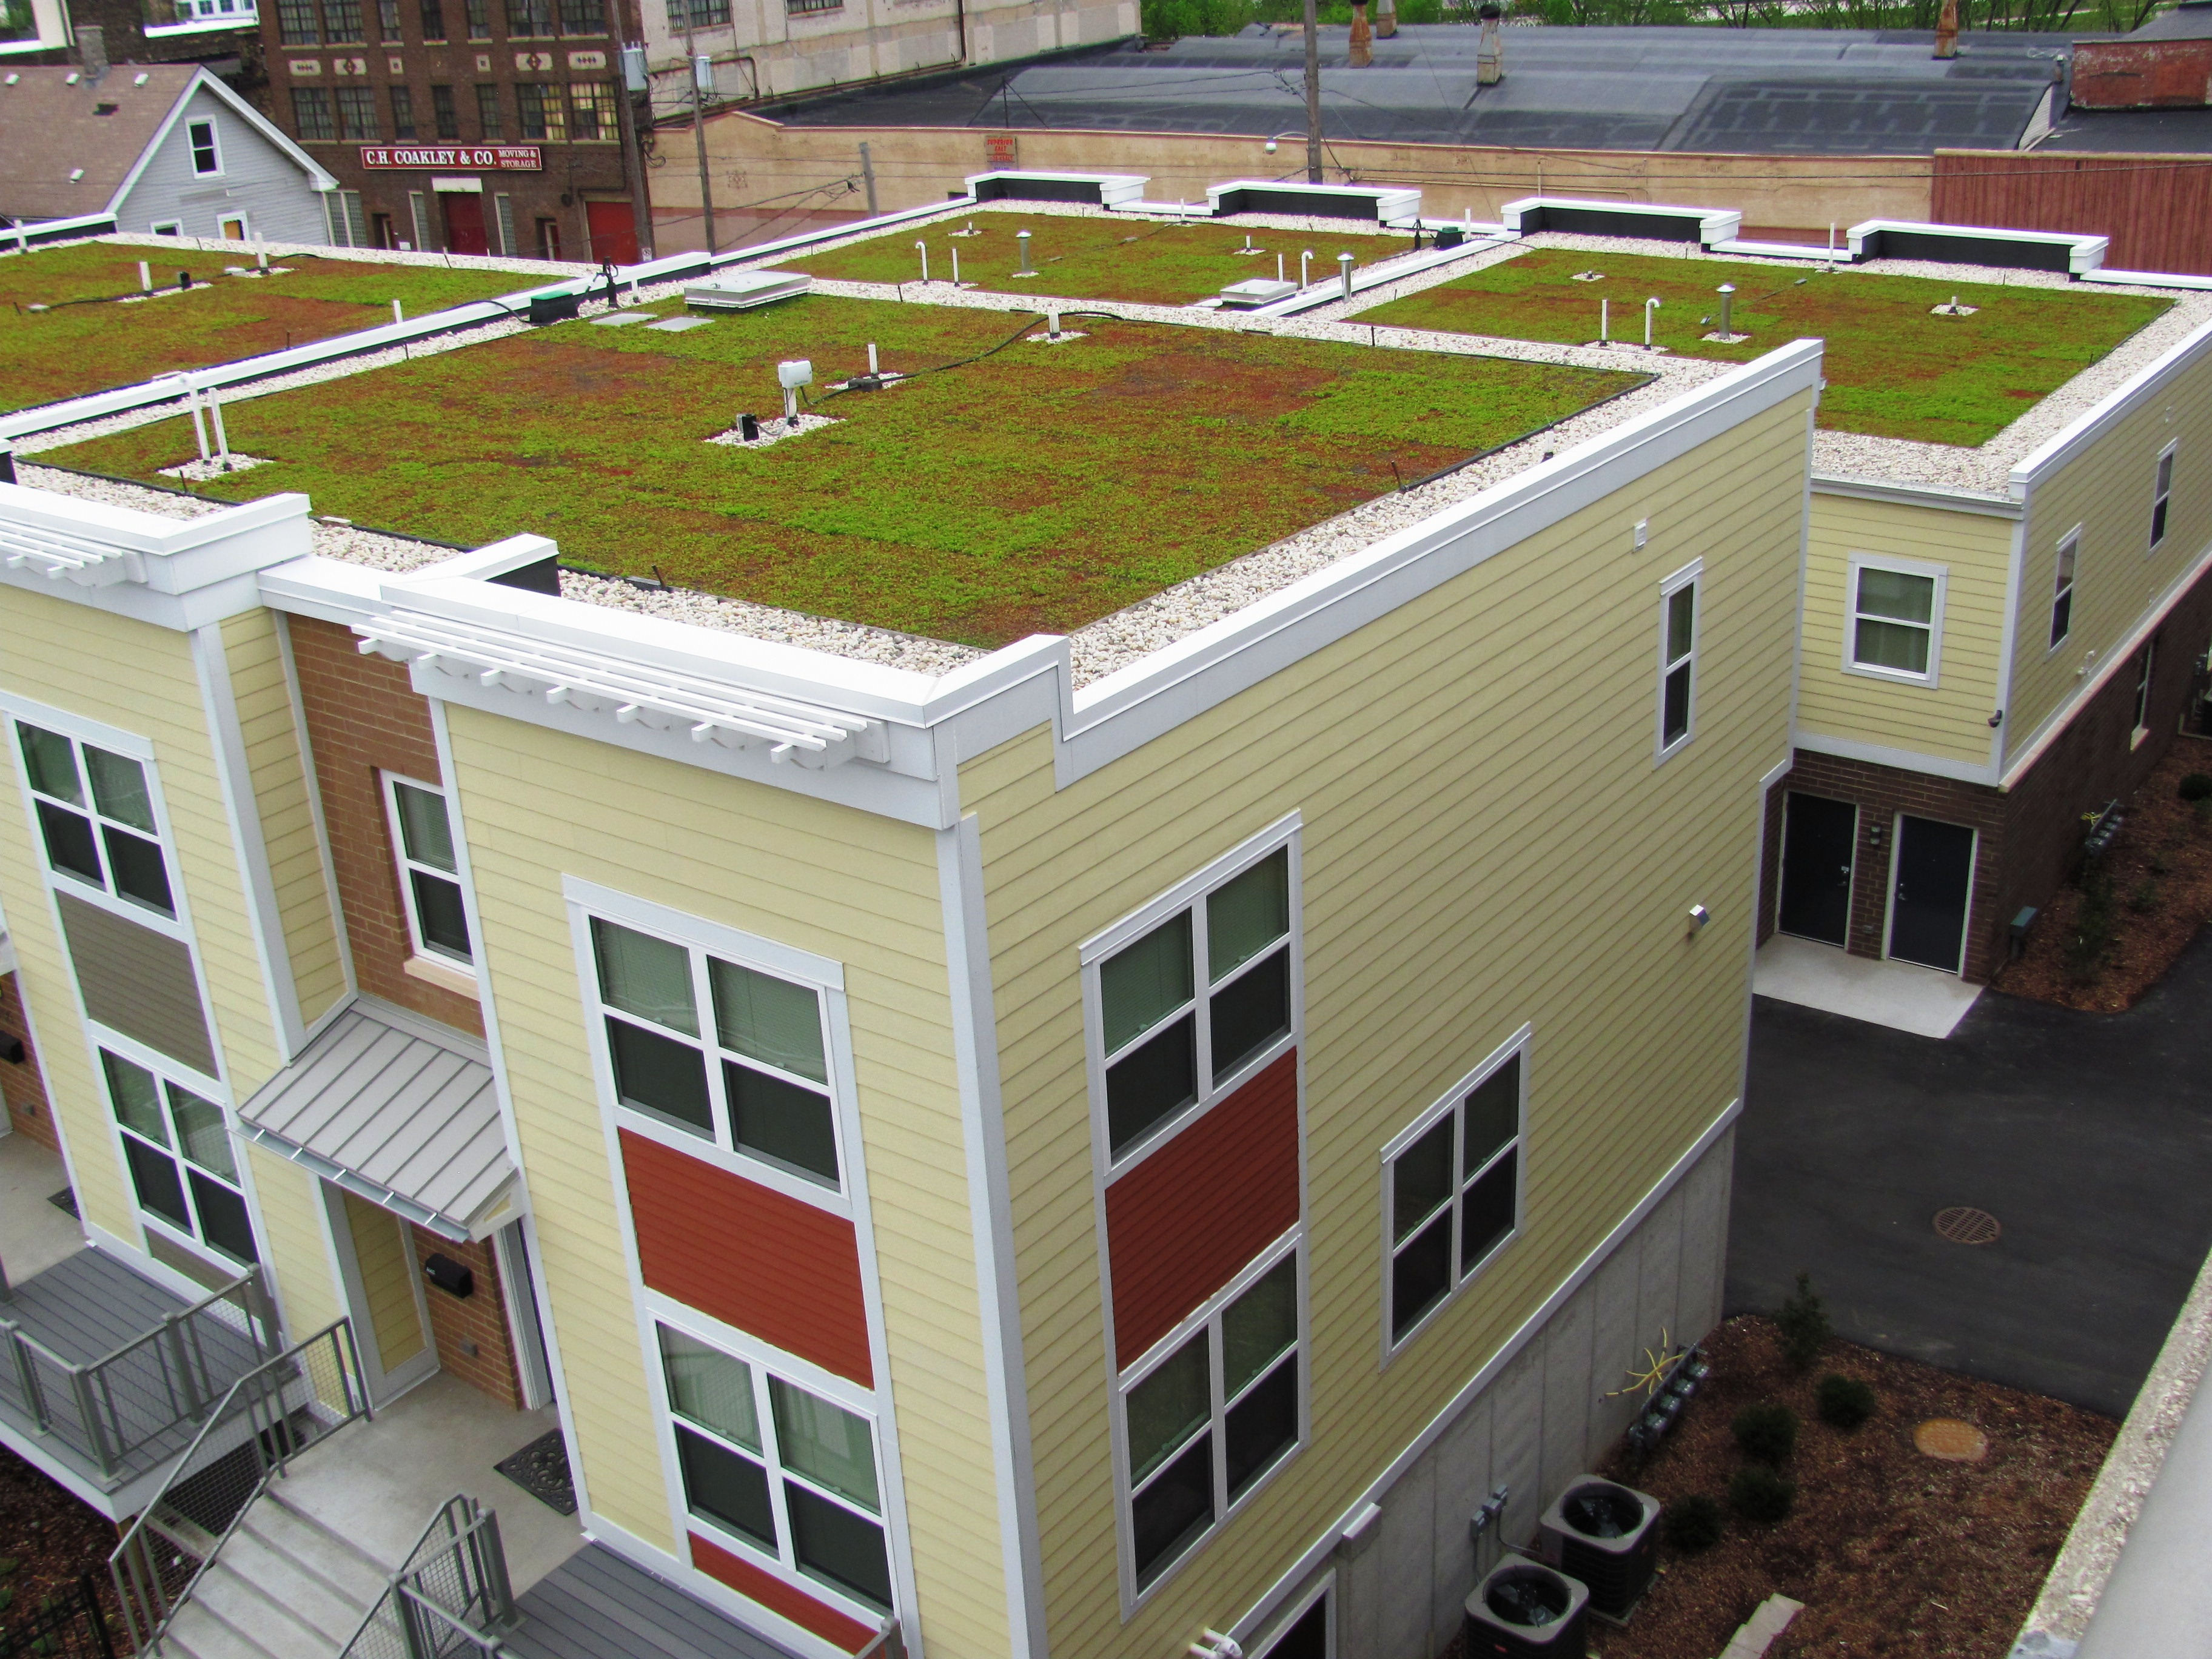 Xero Flor Green Roof System From Xero Flor America Xfa